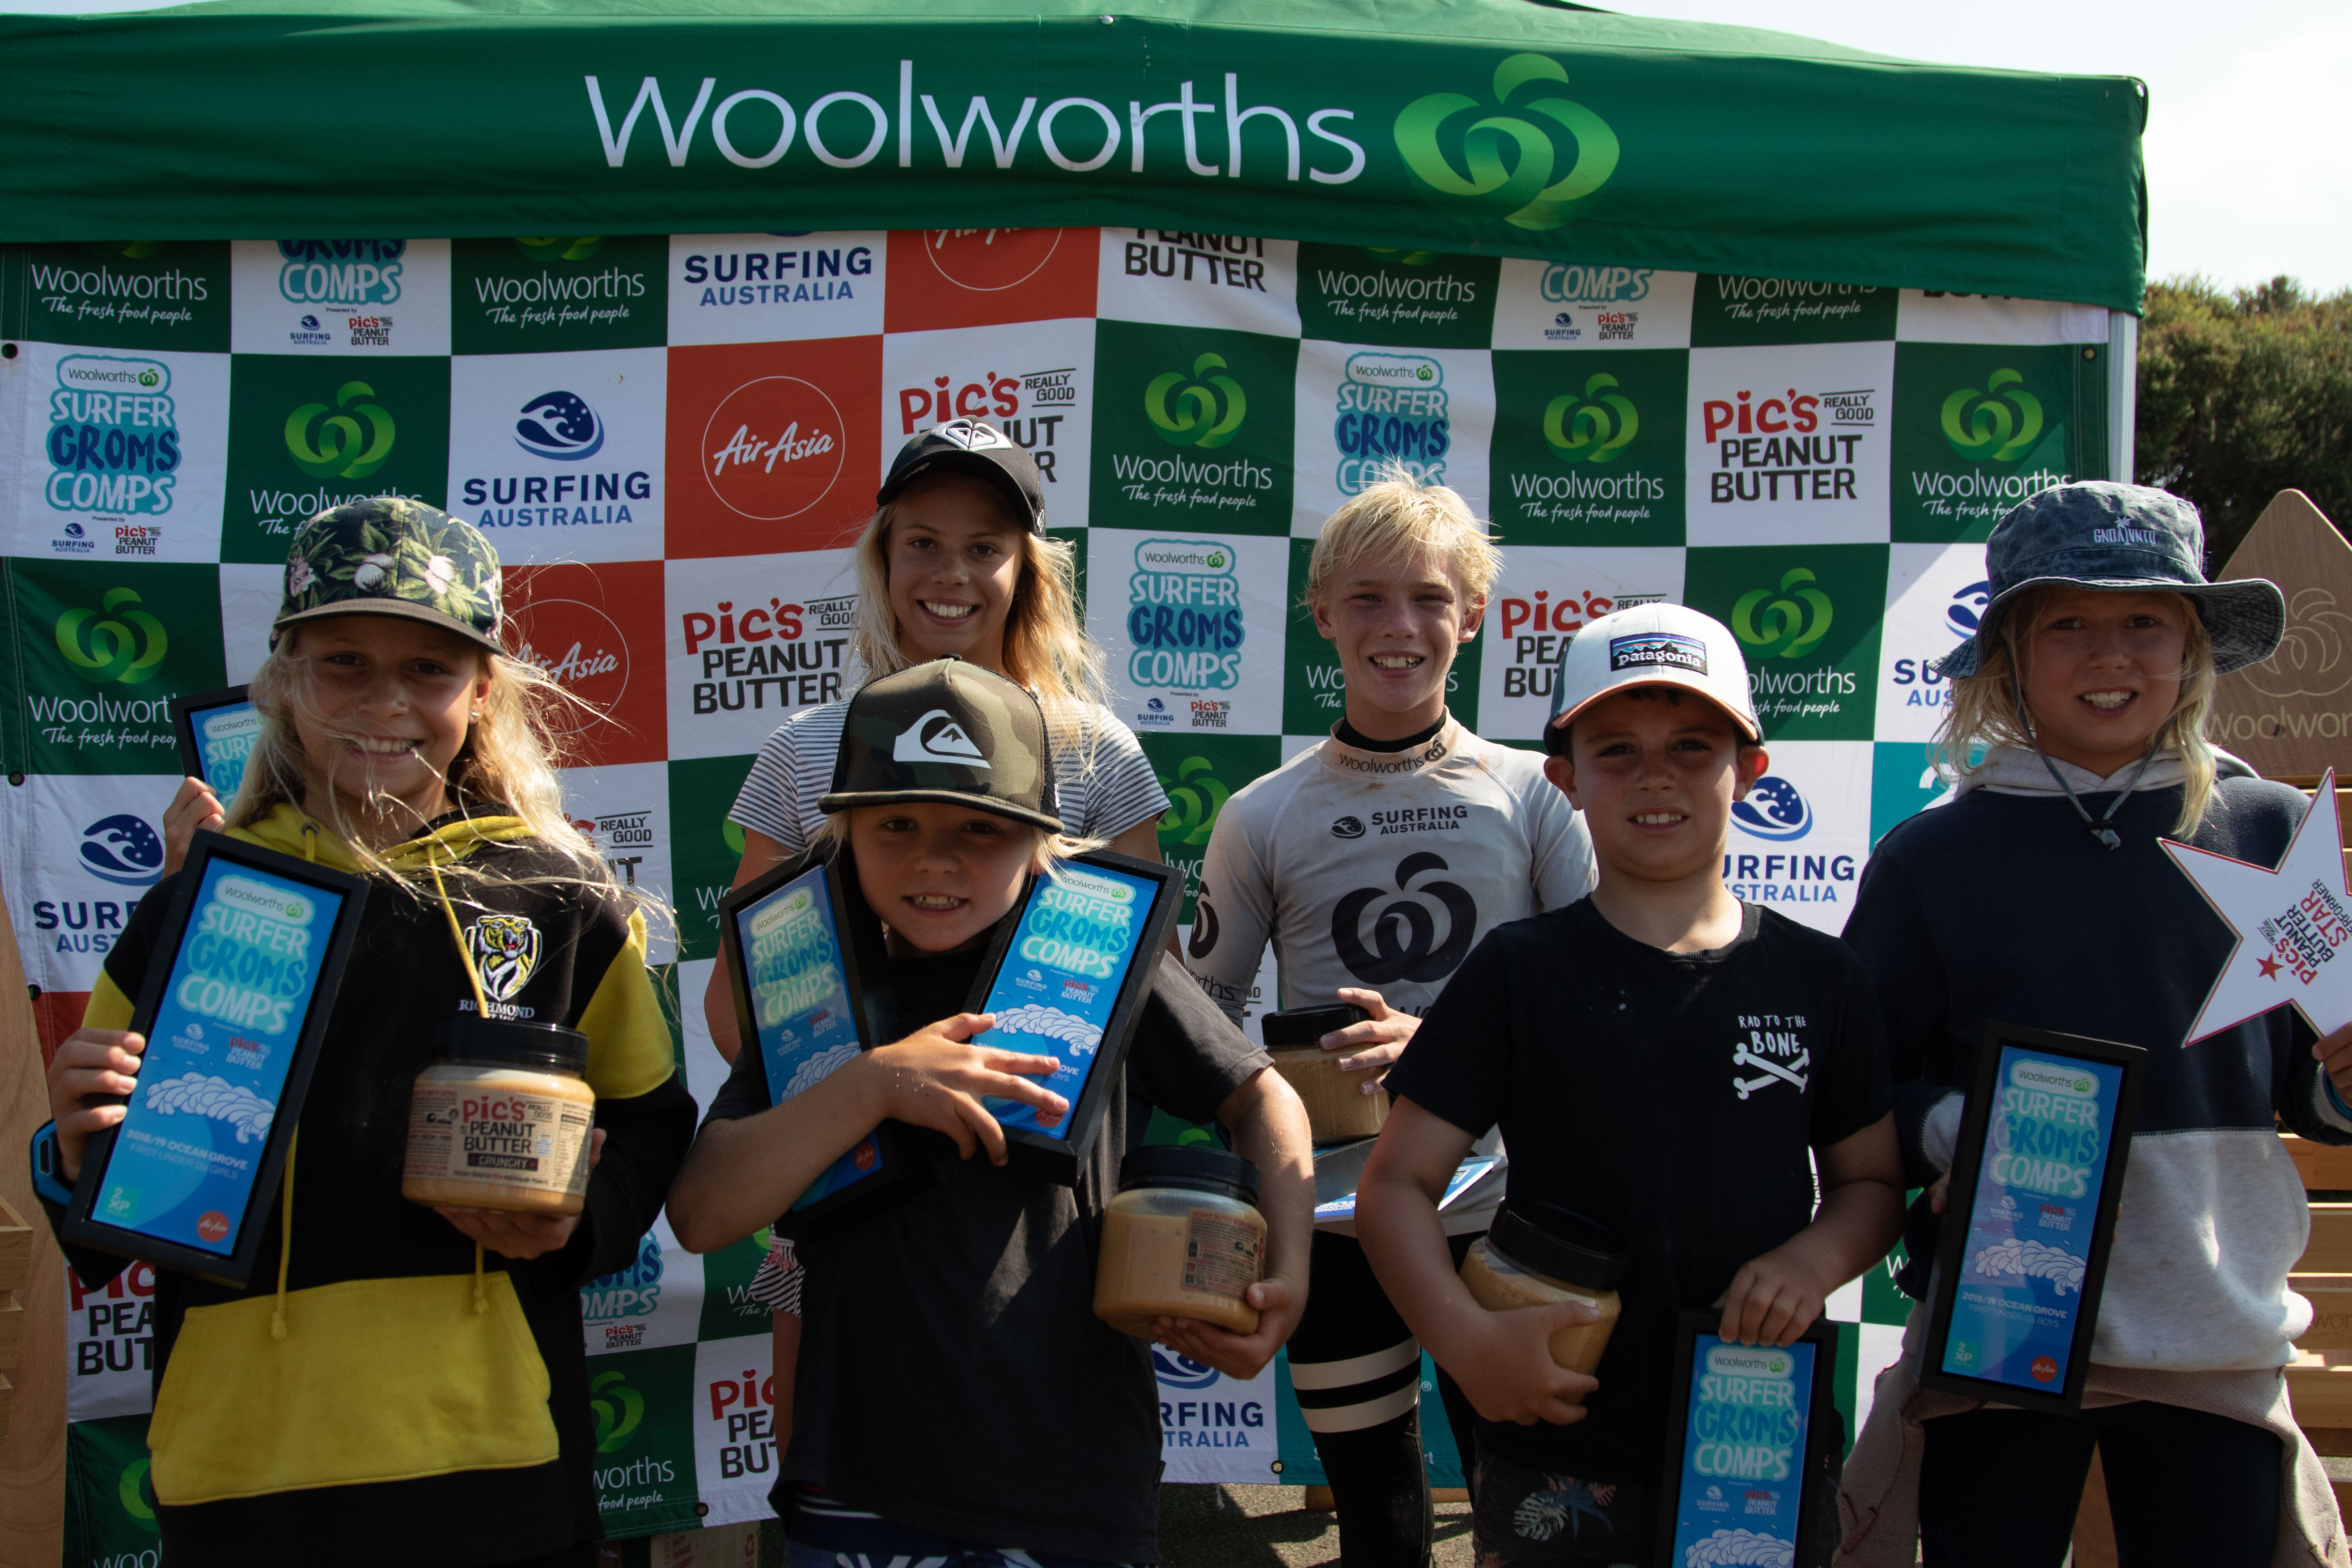 All Winners Woolworths Surfer Groms Comp2019 Zl 033